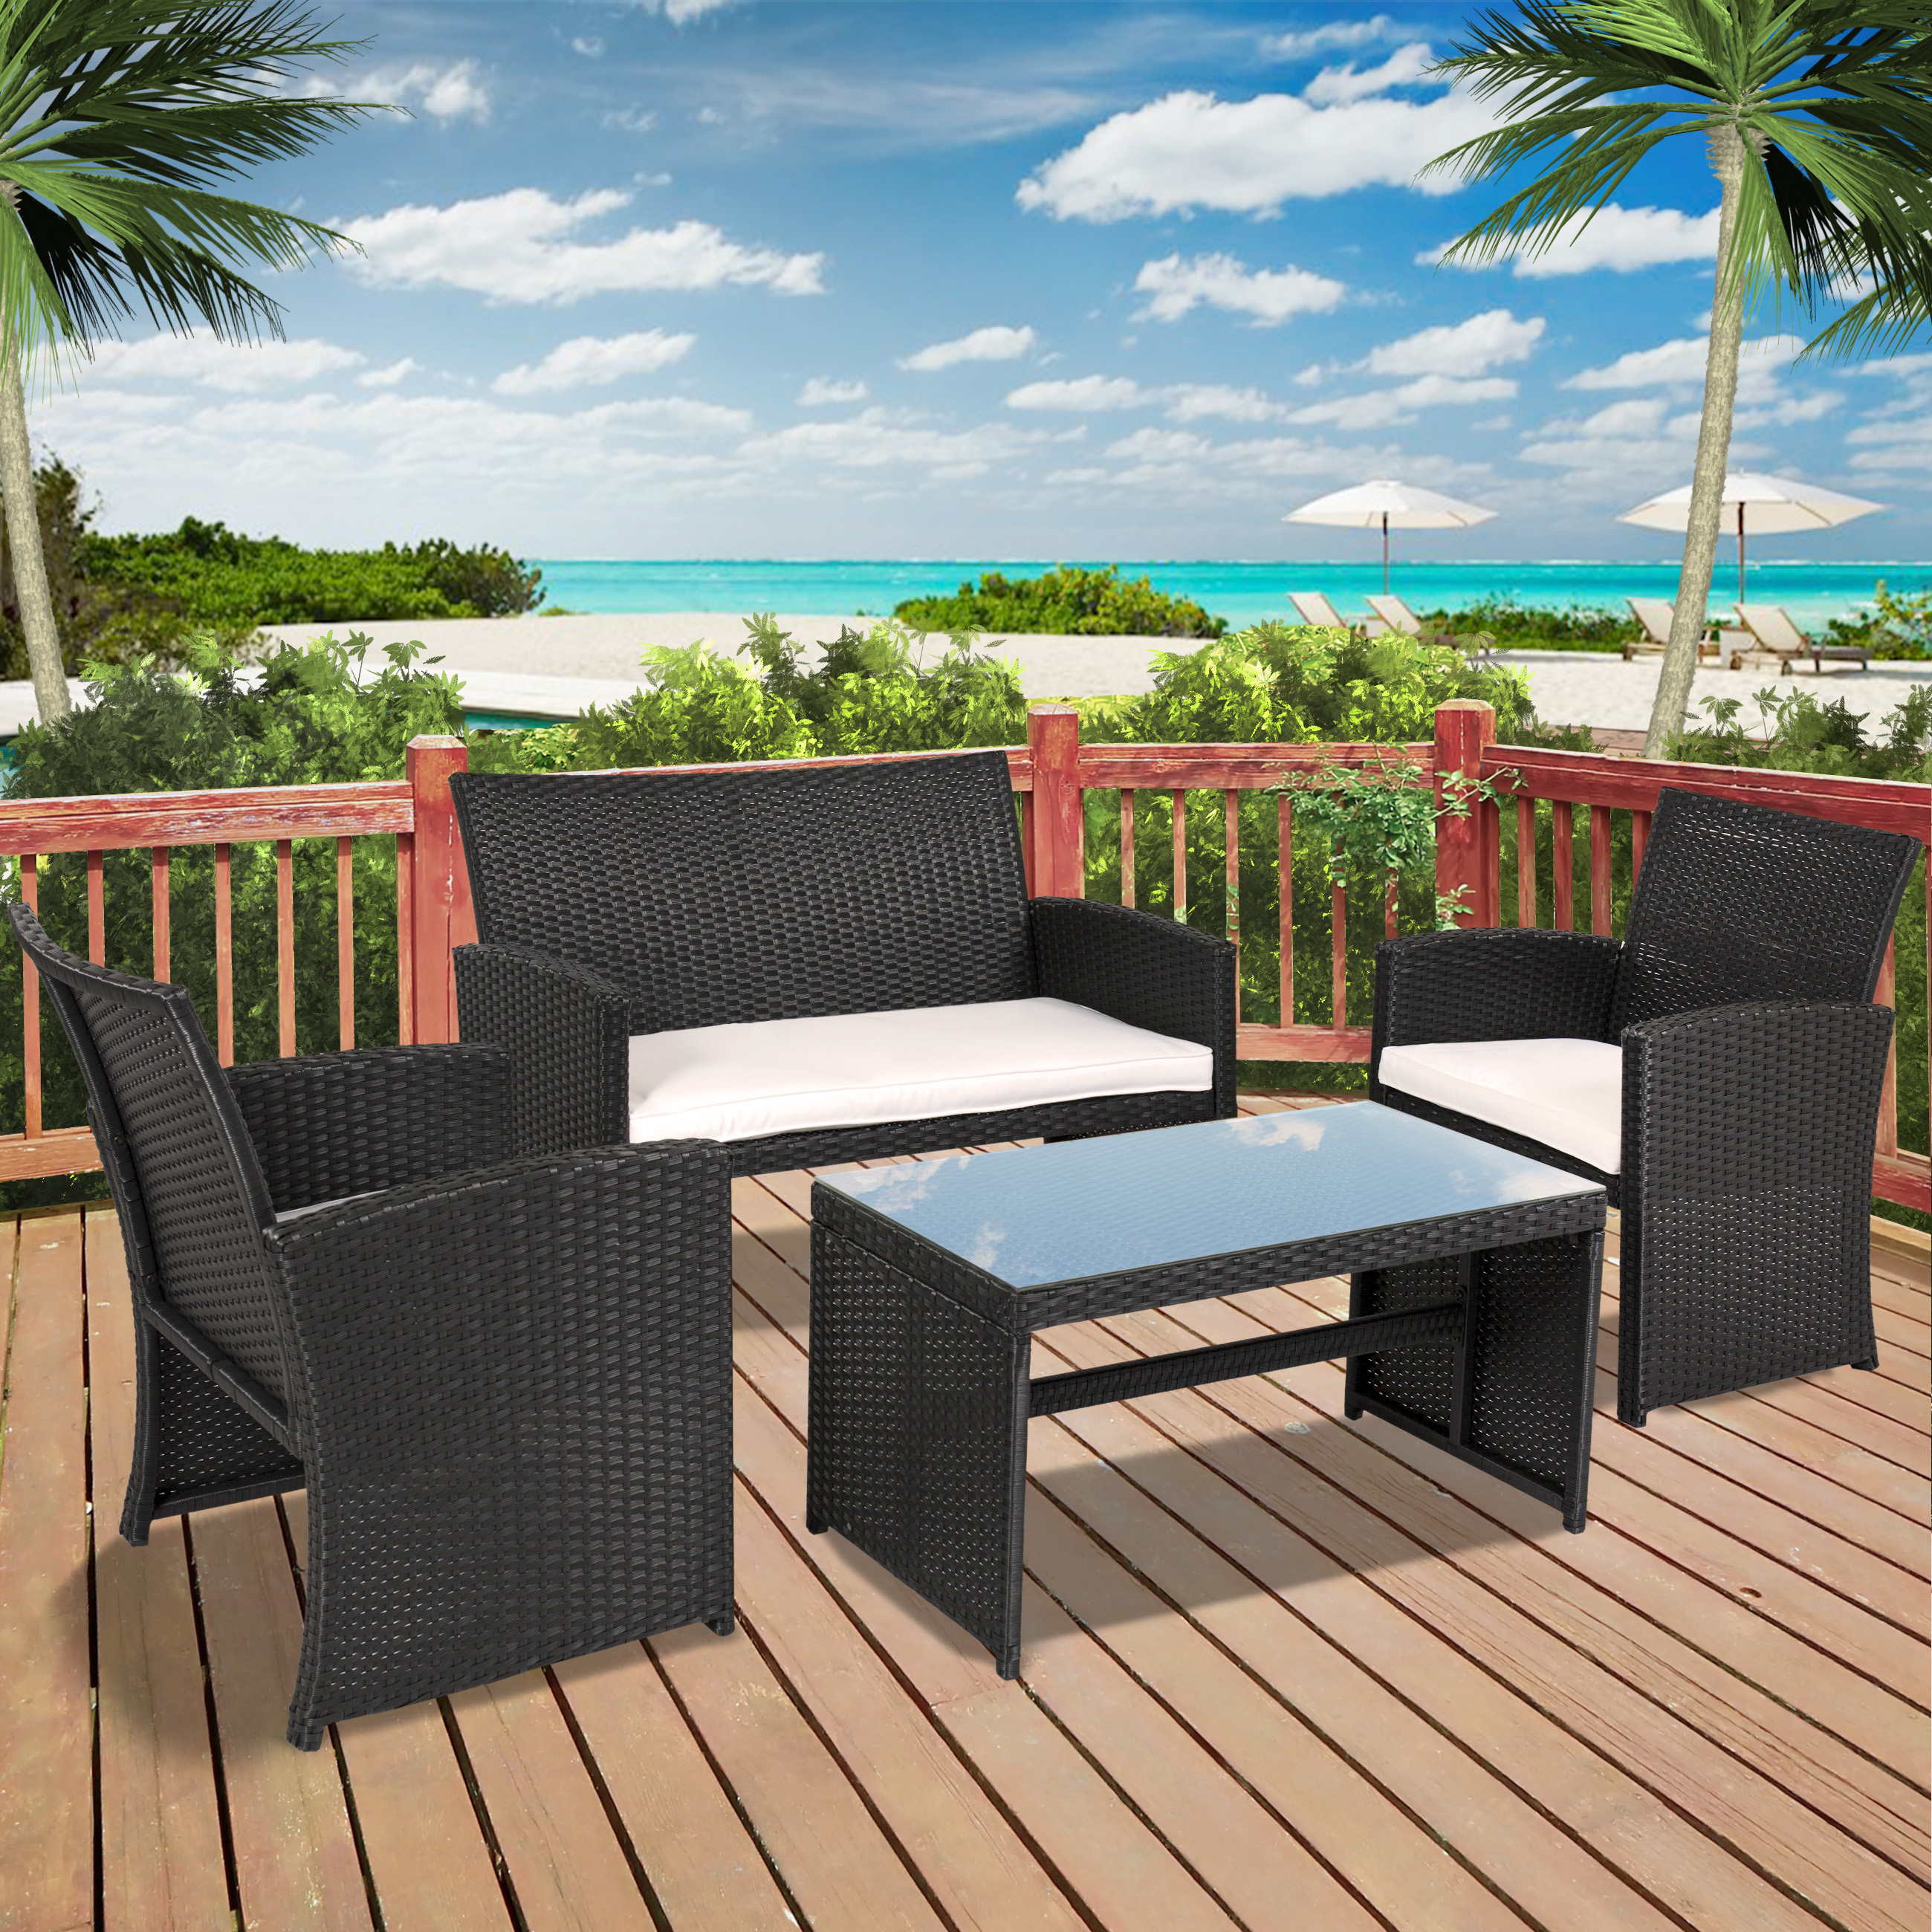 Best Choice Products 4 Piece Wicker Patio Furniture Set w